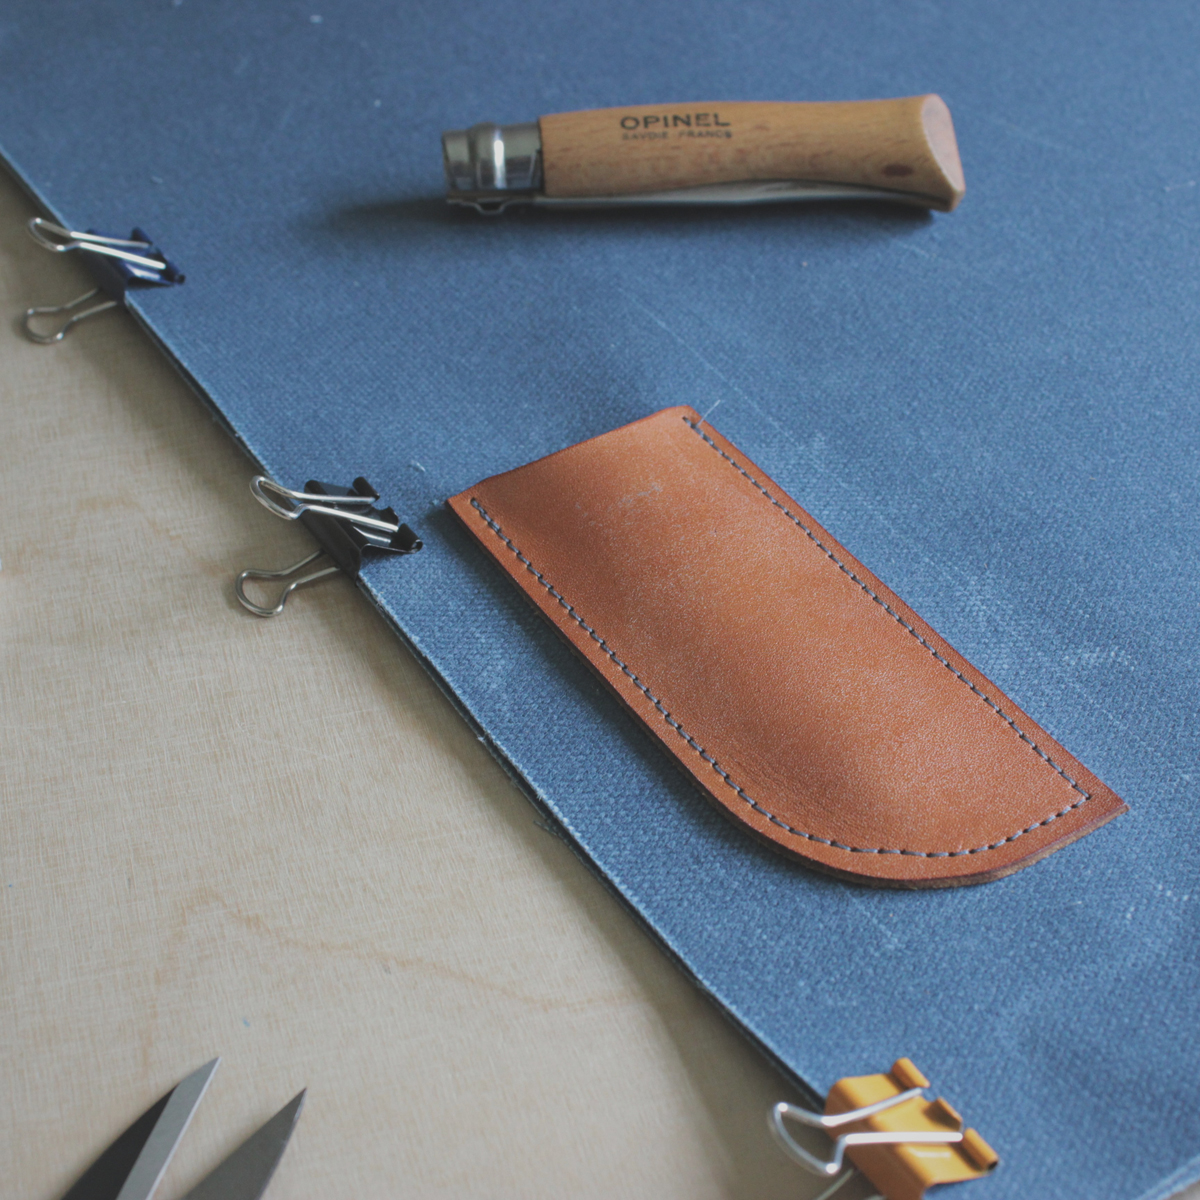 #makeathingaday update... Little leather internal pocket sewn (for your #opinel or other cutting implement). Side seams sewn (although not in this pic!). Seam binding next. Time for a coffee.